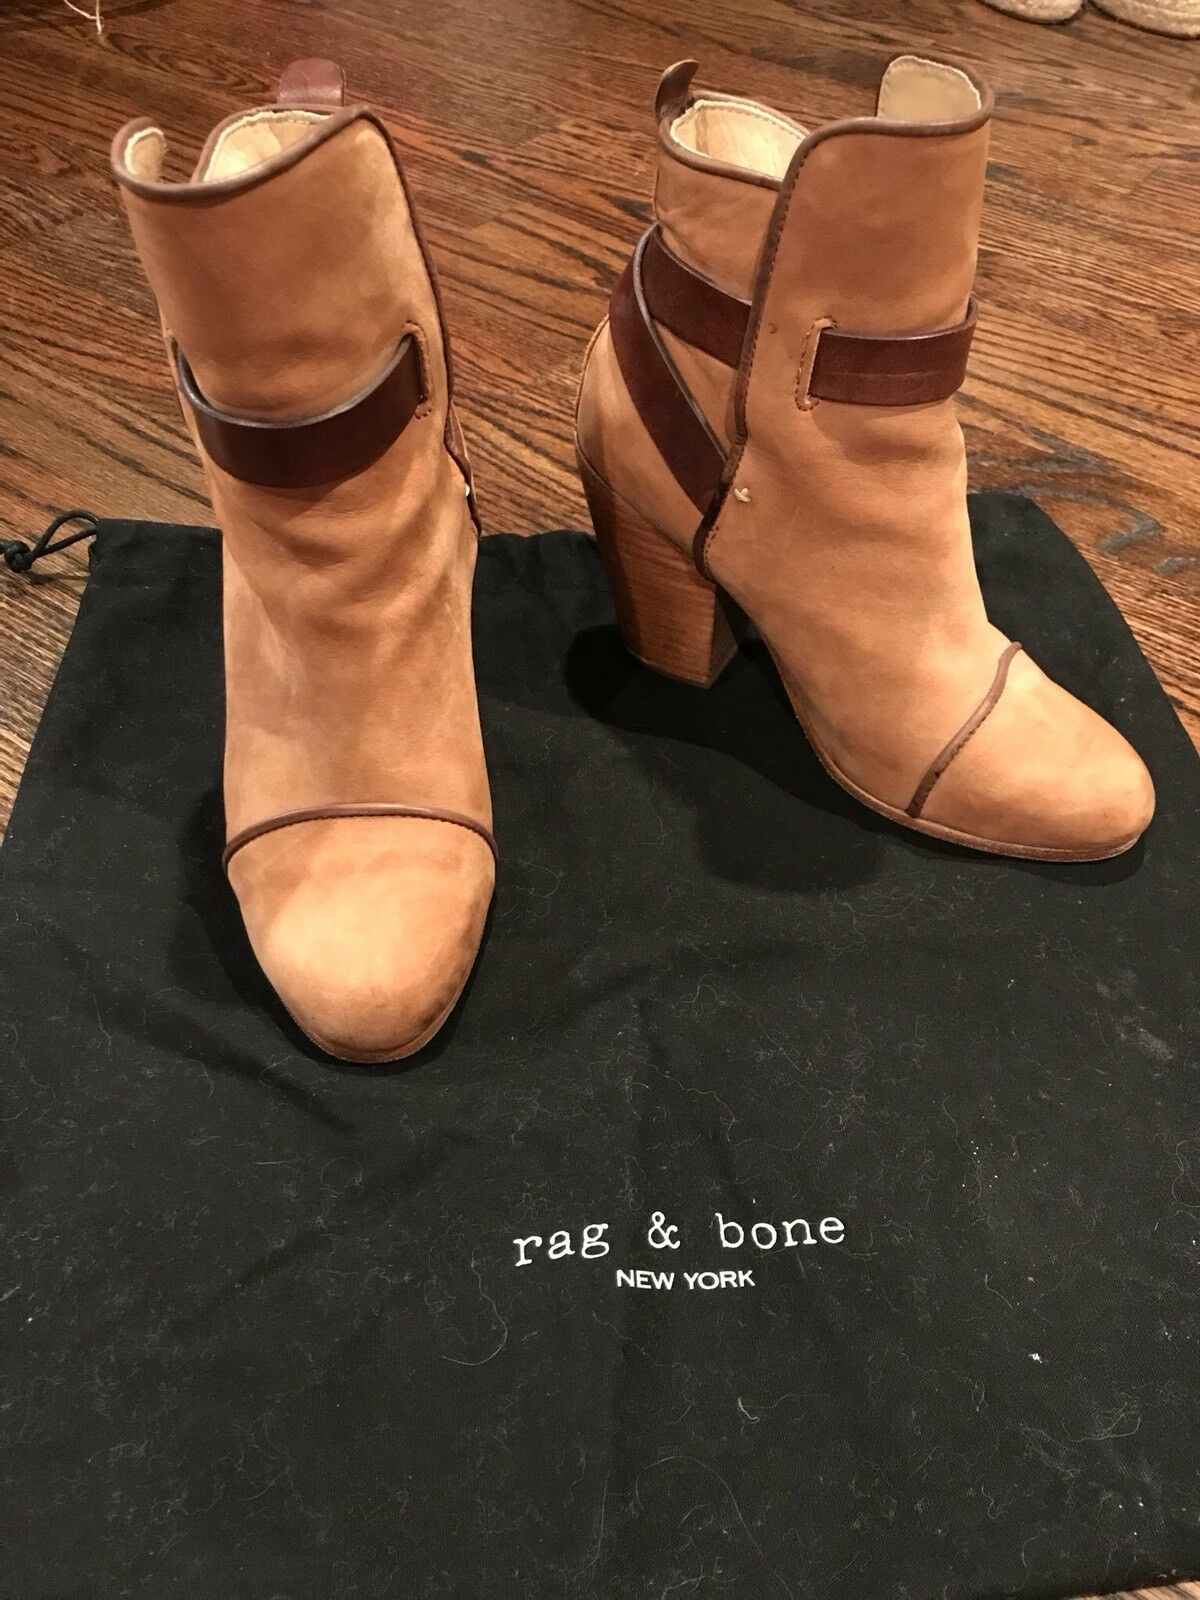 Rag & Bone Kinsey Ankle Boot in camel and brown, Size 36.5 6.5